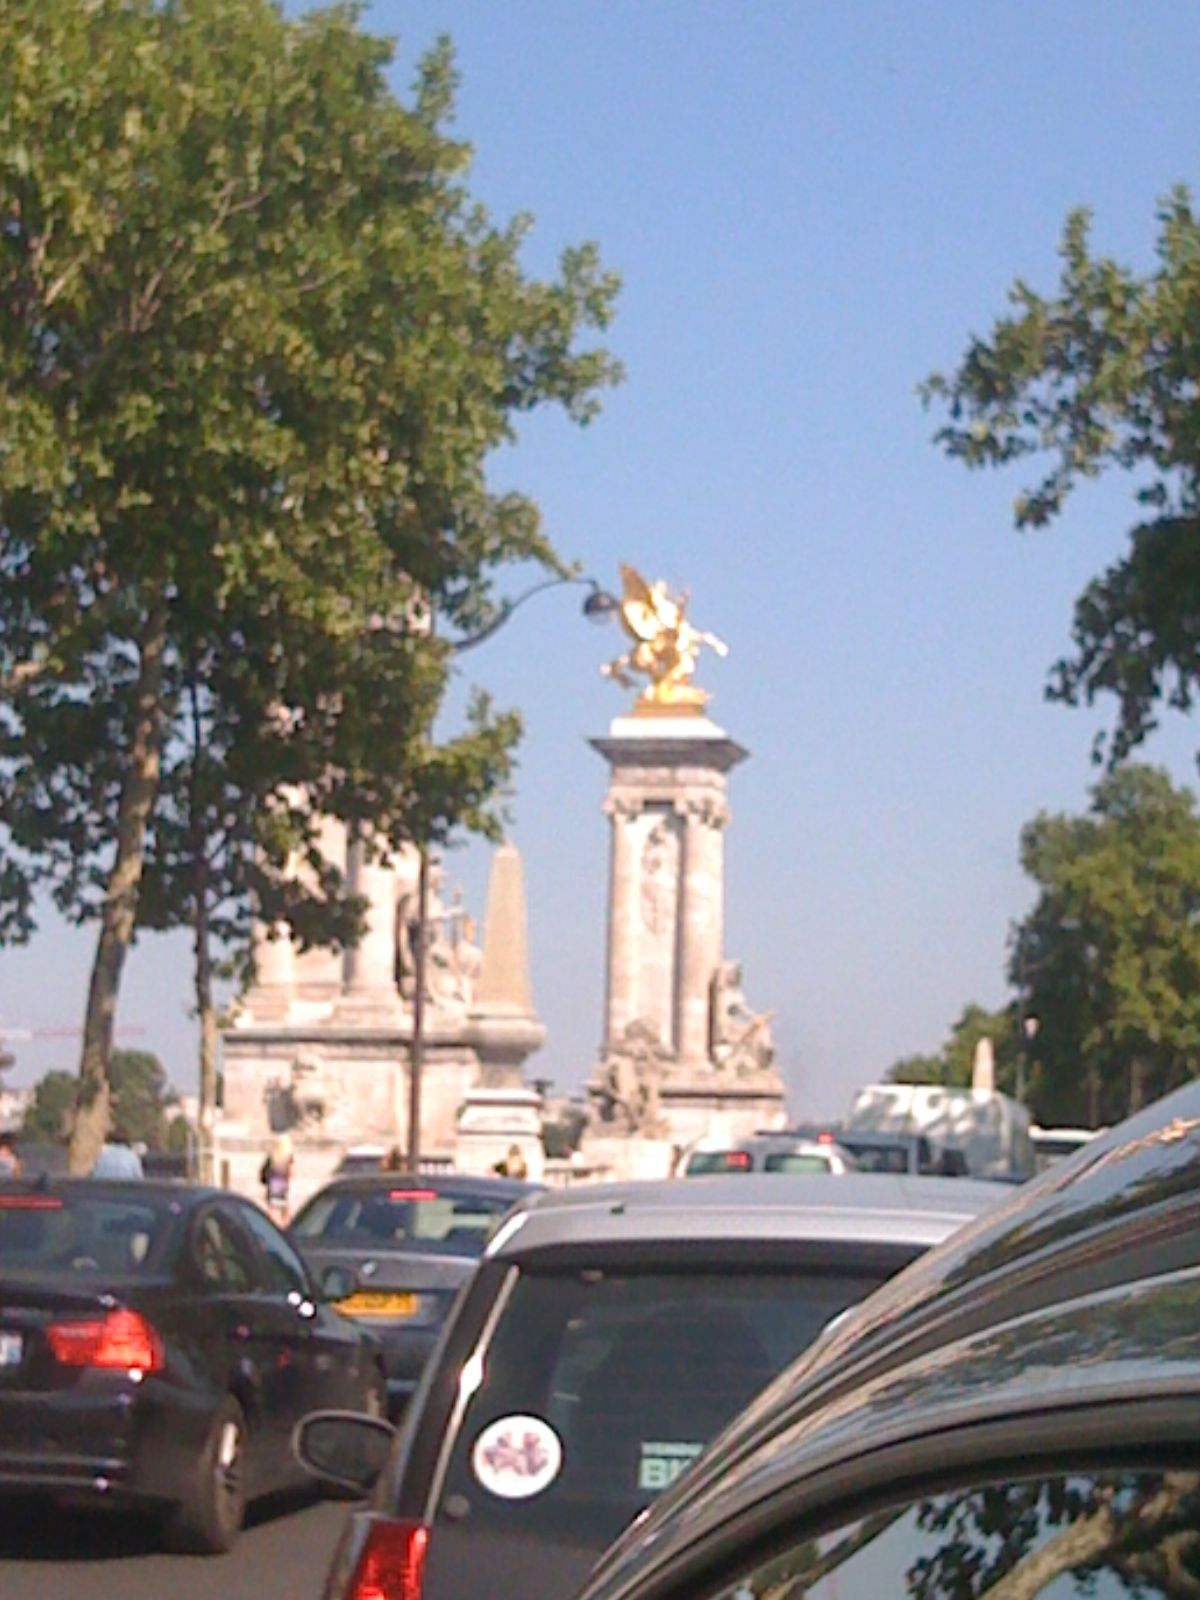 Another view in Paris